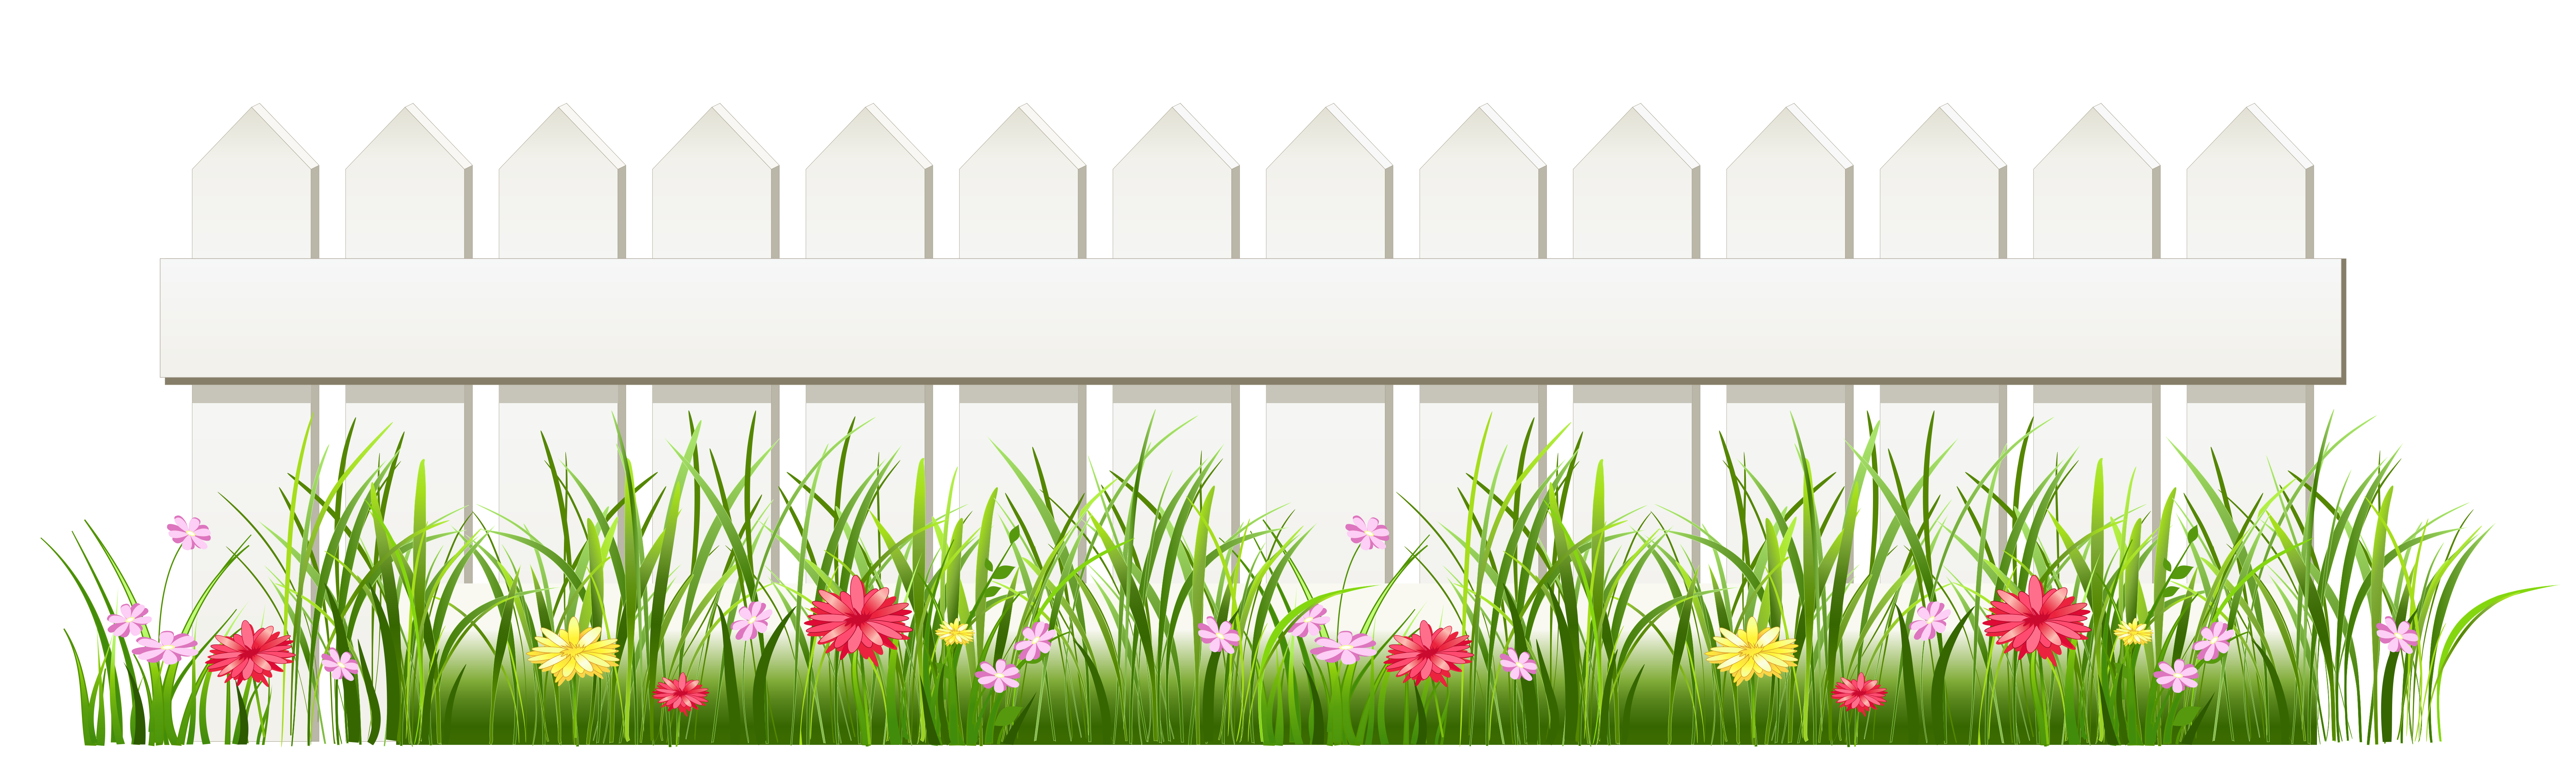 Transparent White Fence with Grass PNG Clipart | Gallery ... jpg free download